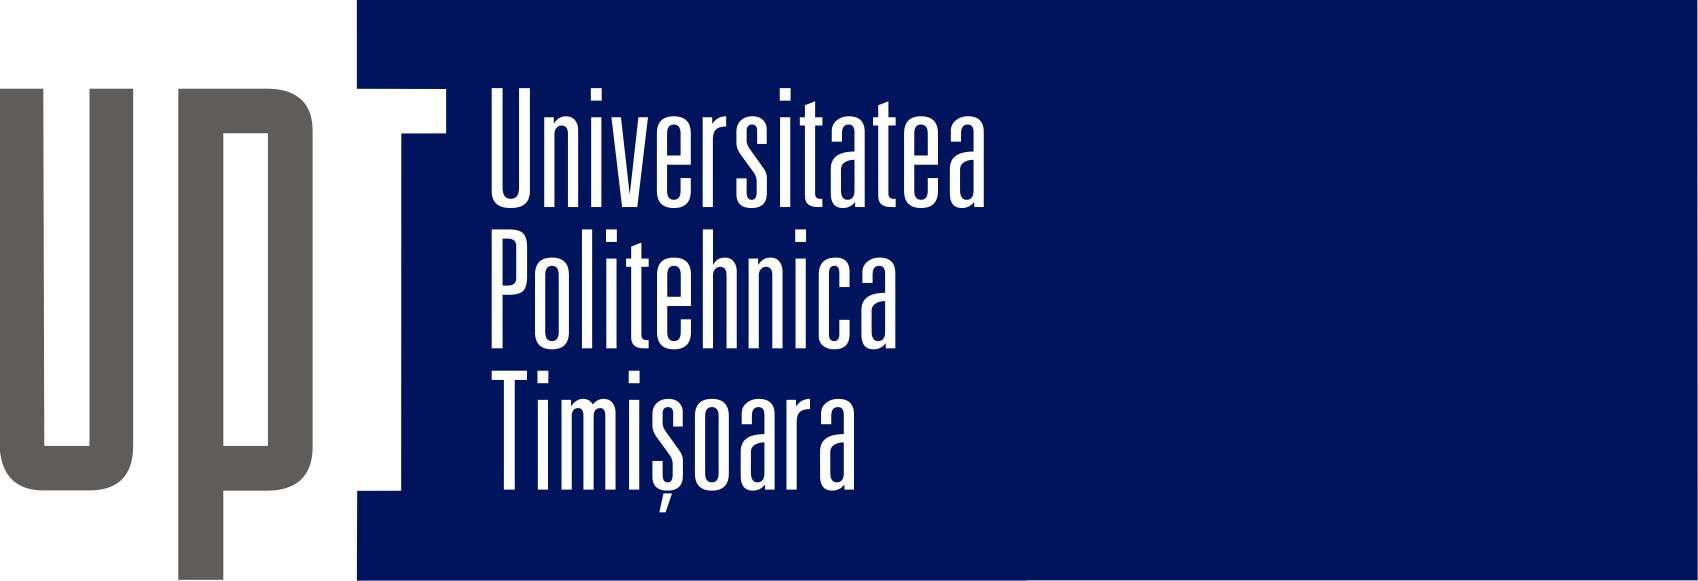 Polytechnic University of Timisoara Romania